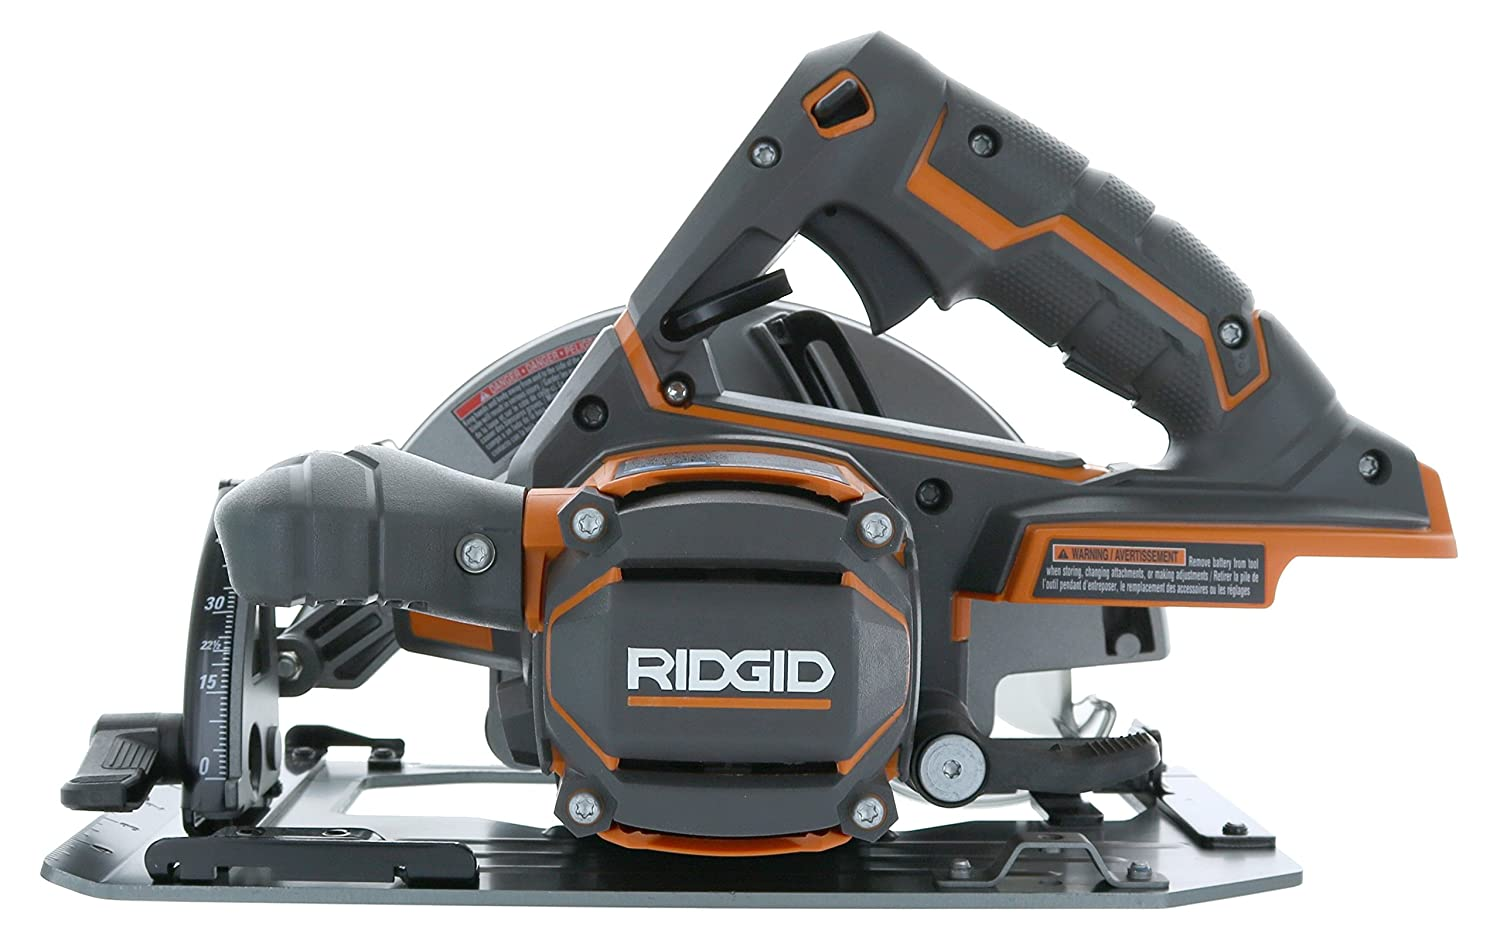 Ridgid genuine oem r8652 gen5x cordless 18v lithium ion brush motor ridgid genuine oem r8652 gen5x cordless 18v lithium ion brush motor 7 14 inch circular saw batteries not included power tool and single blade only greentooth Gallery